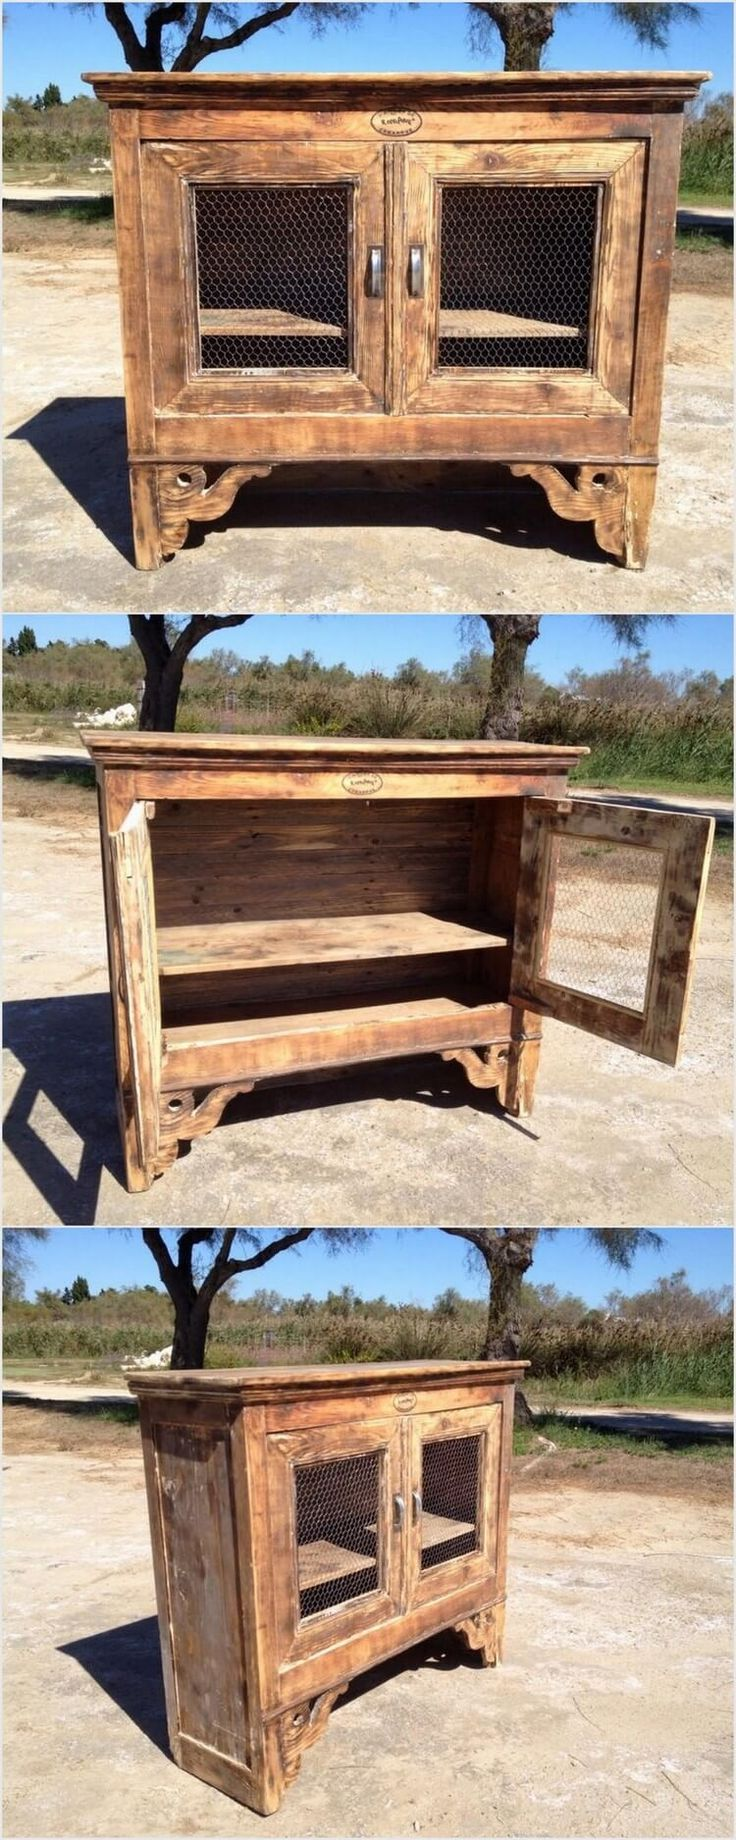 186 best Wooden Pallet Furniture images on Pinterest | Benches ...